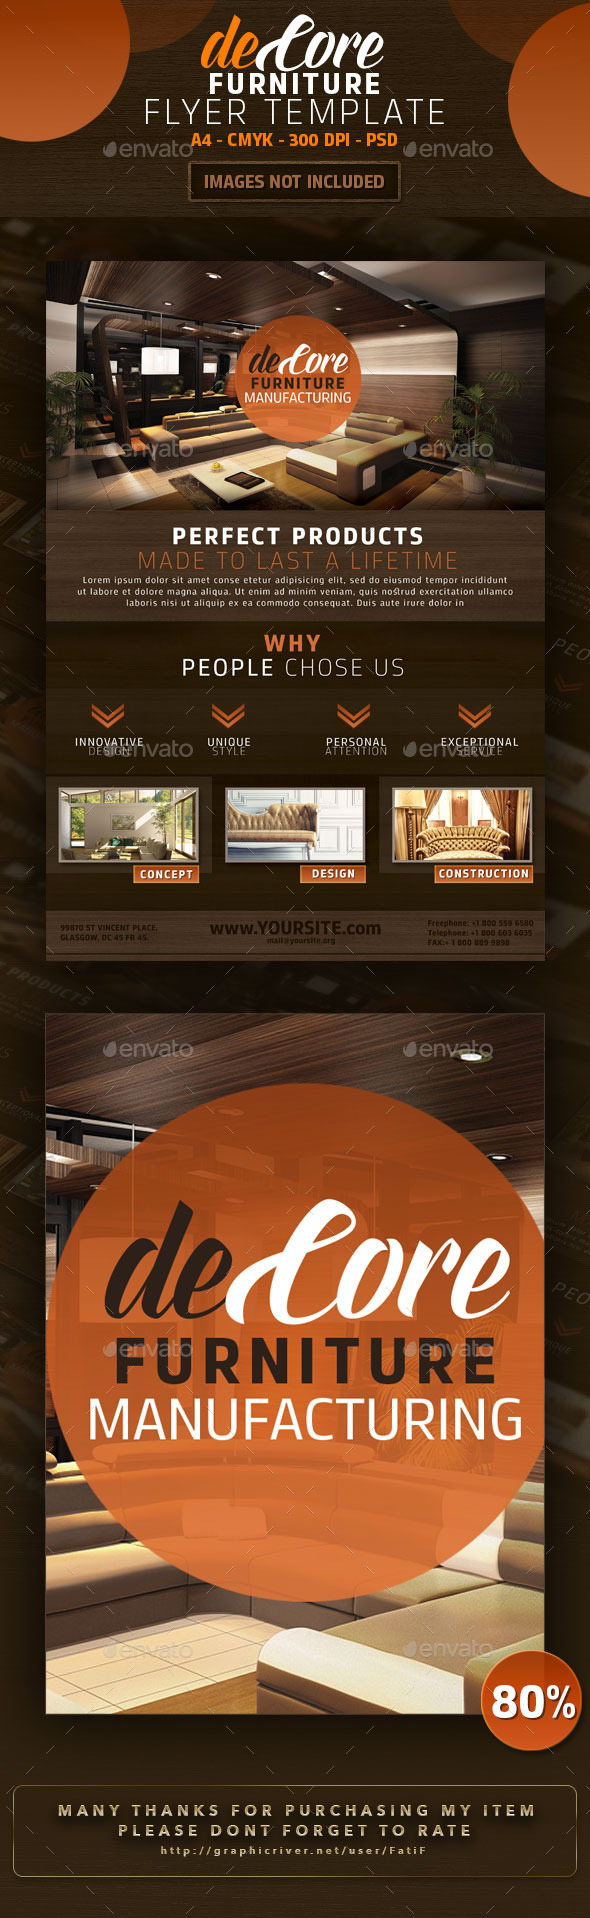 GraphicRiver DeCore Furniture Flyer Template 9359935